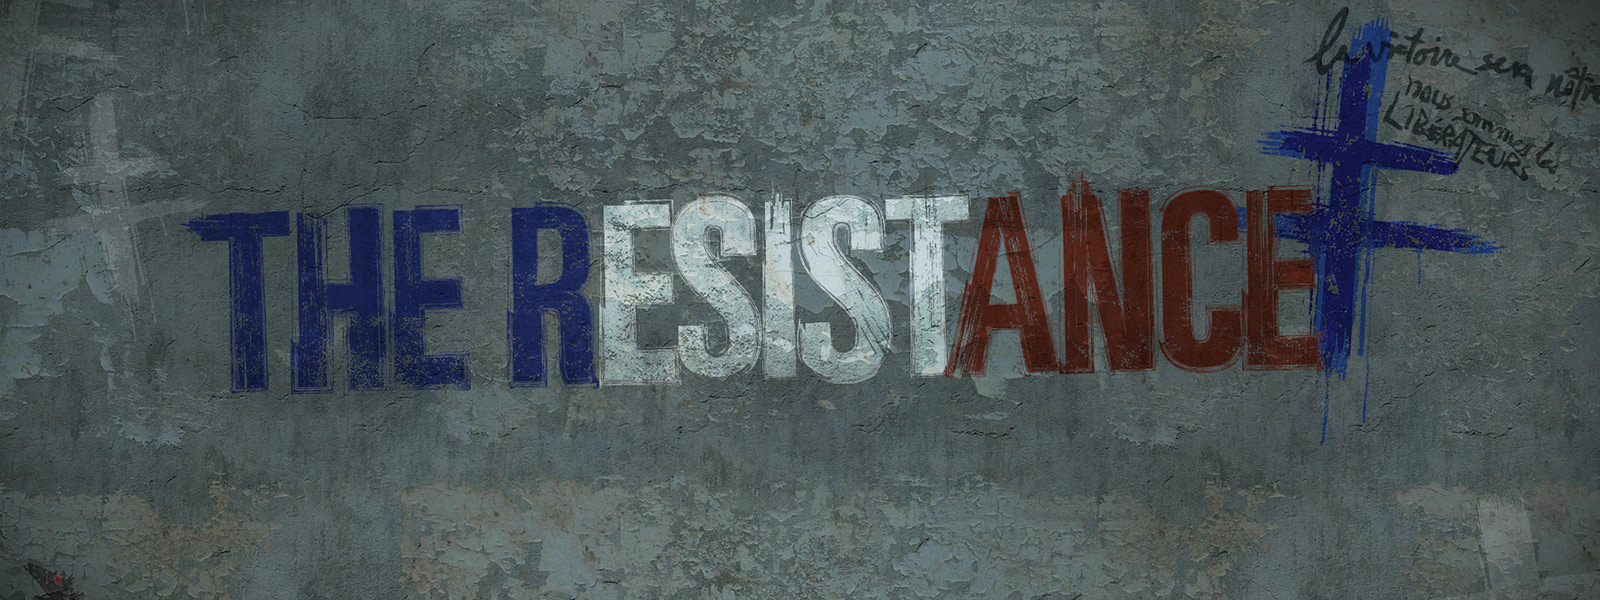 The Resistance written in graffiti on a concrete wall